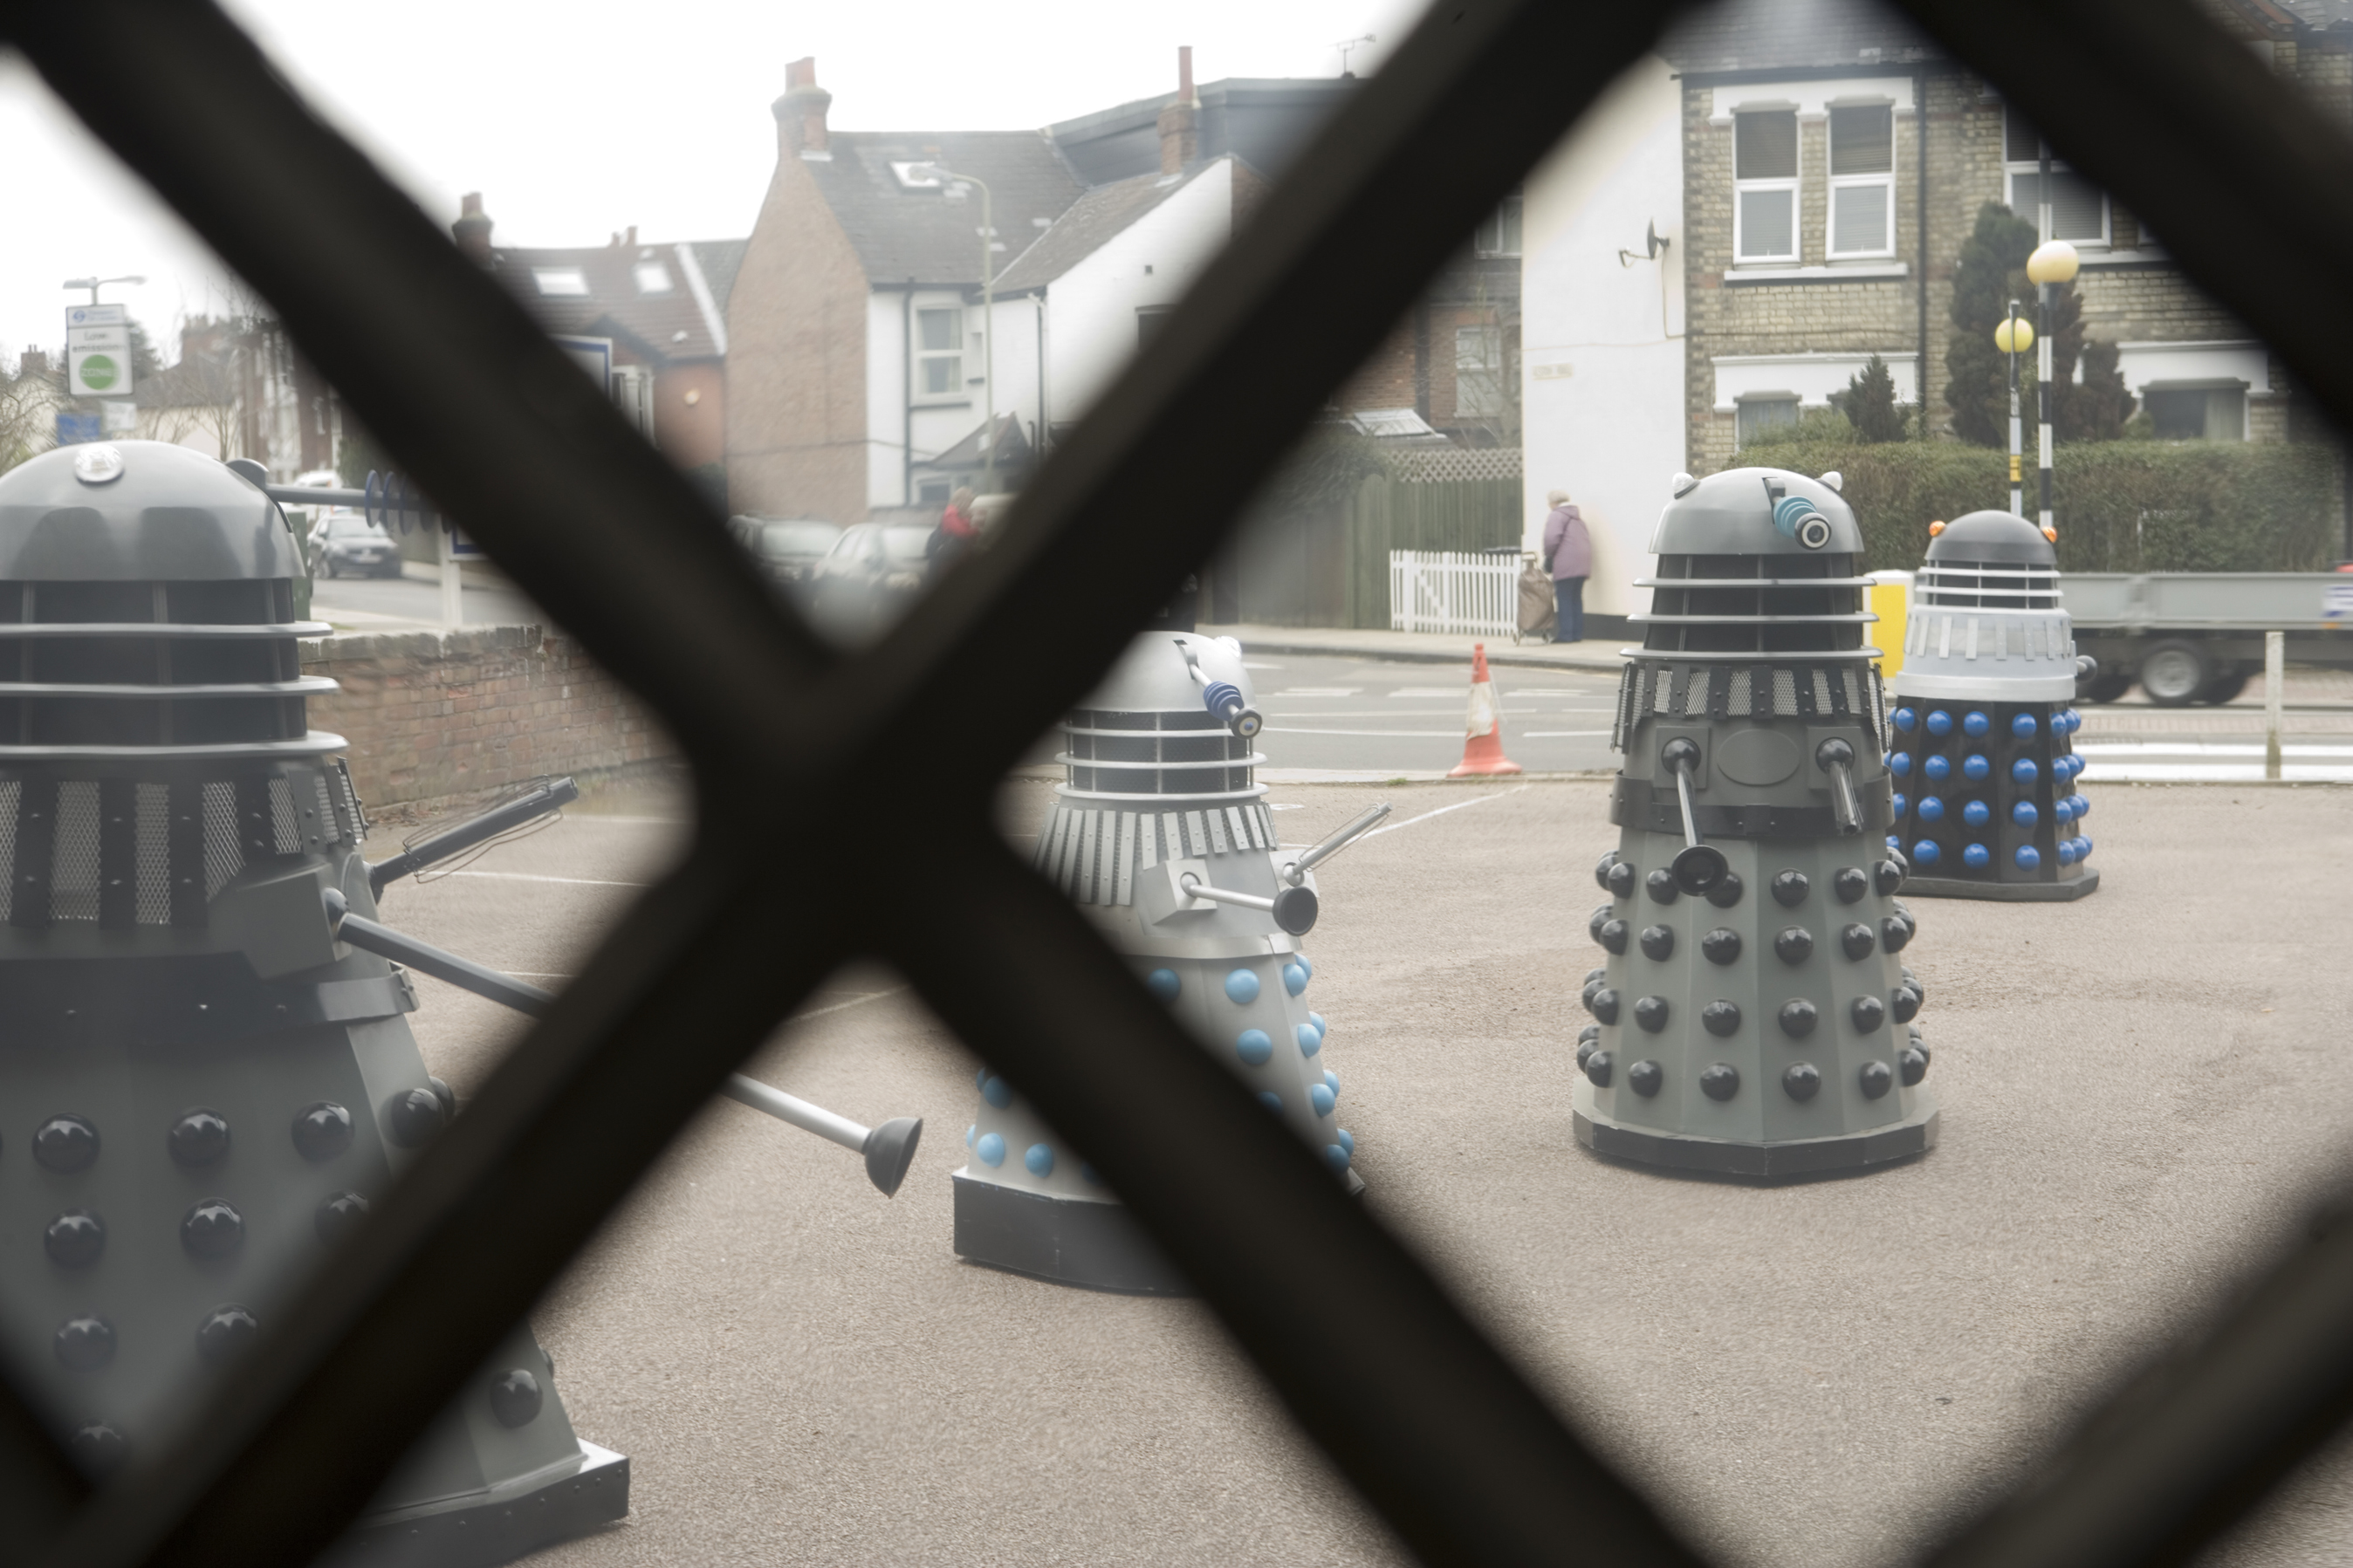 There's a dalek out there somewhere!